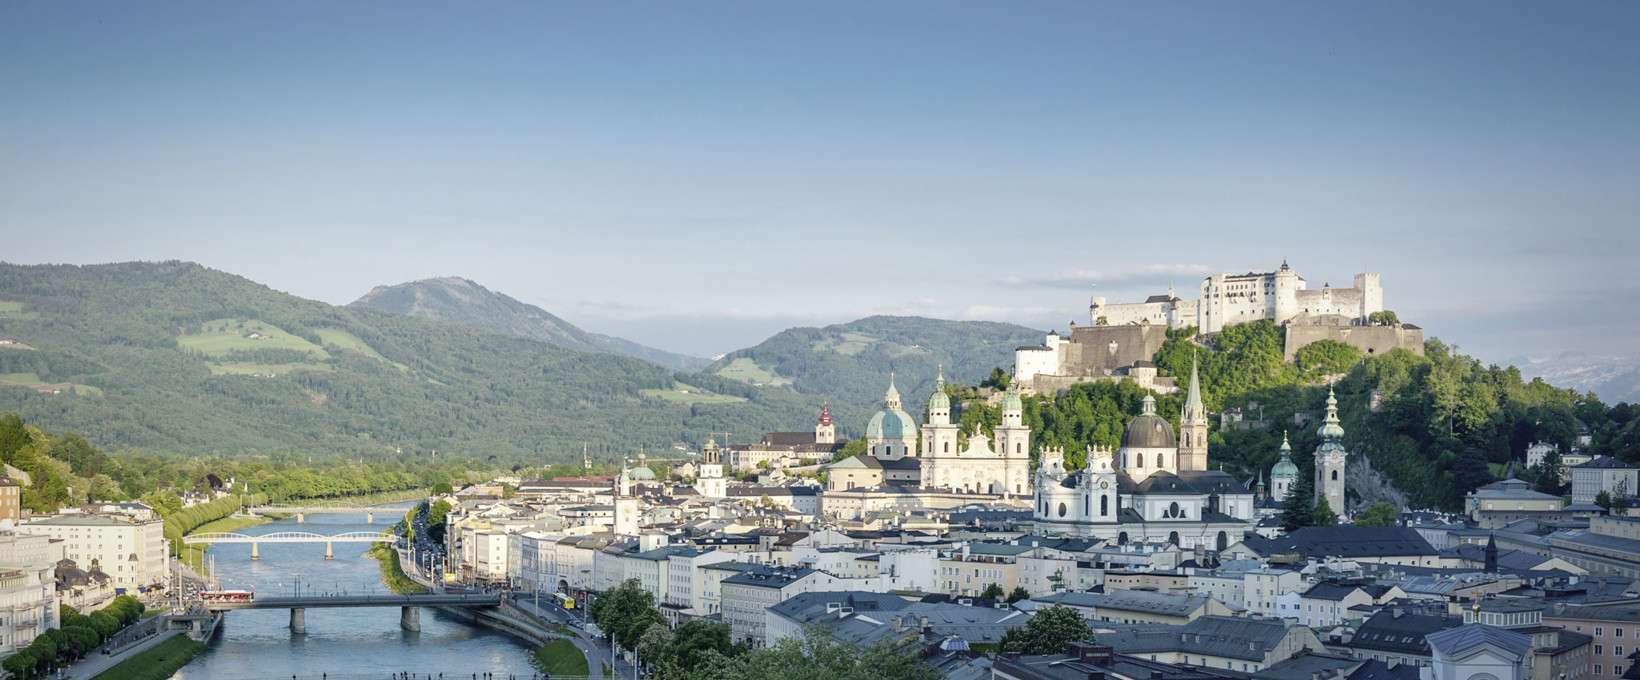 Panorama over the city | Salzburg | © Tourismus Salzburg